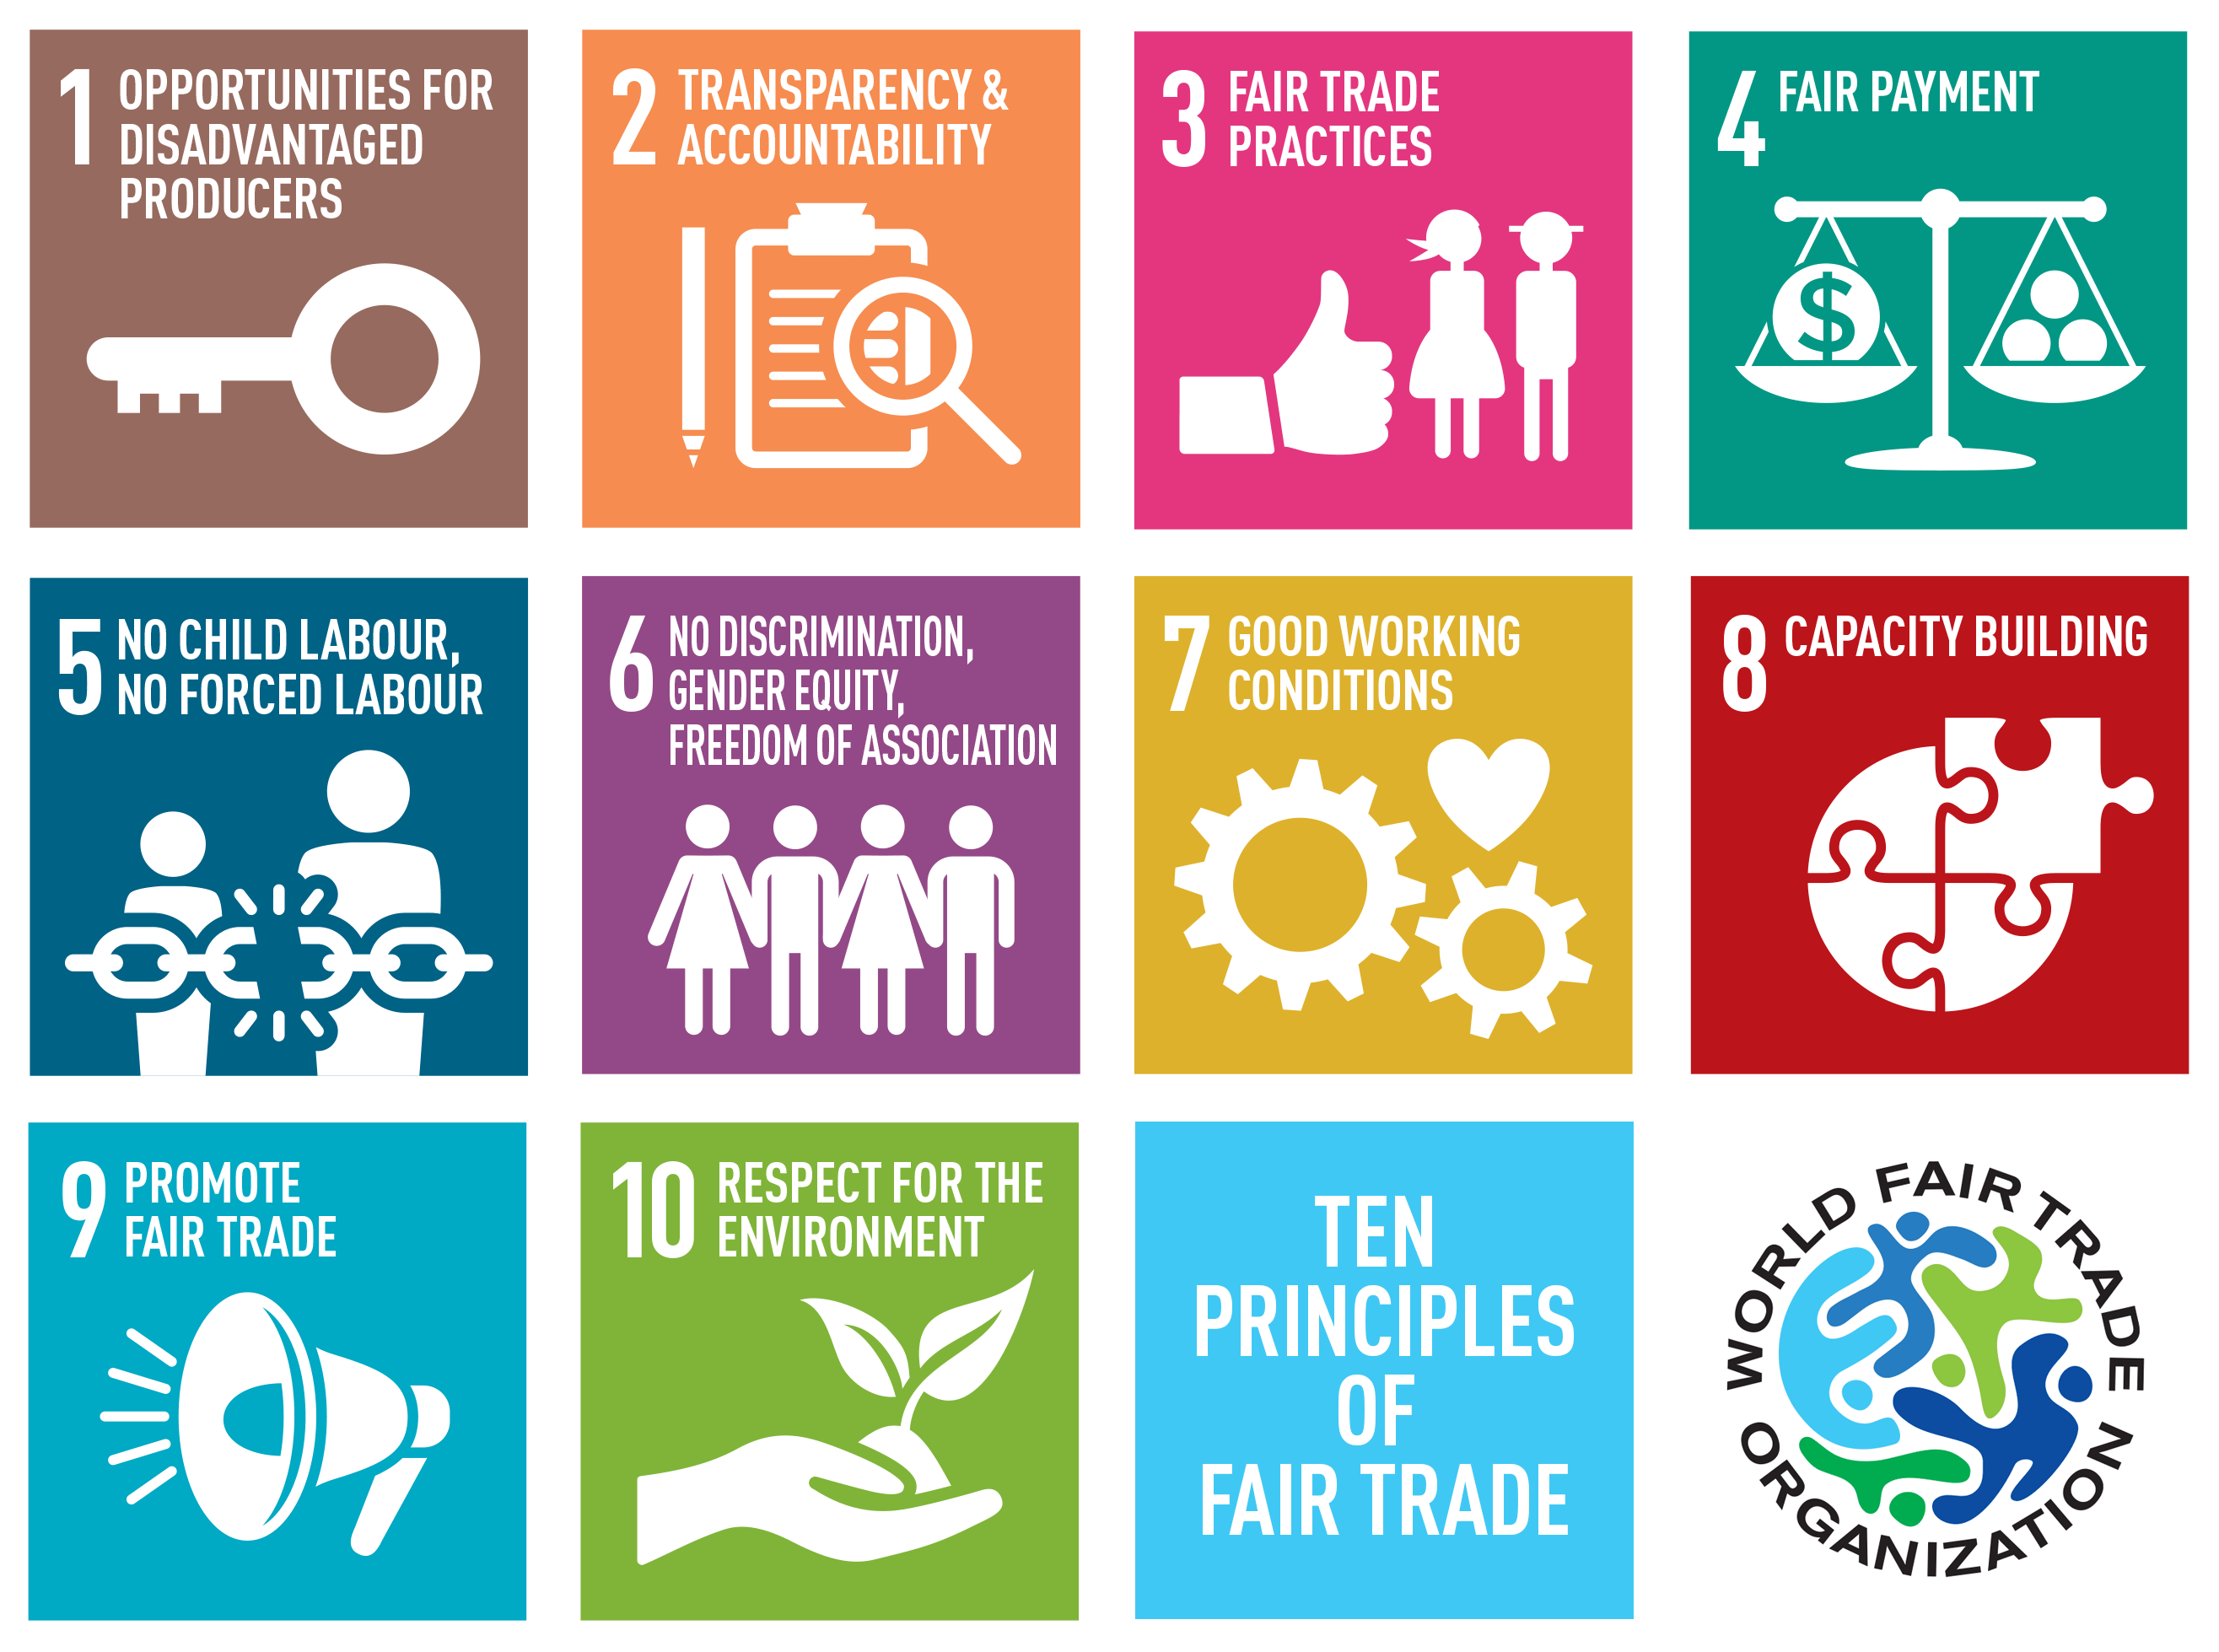 10 PRINCIPLES OF FAIR TRADE | World Fair Trade Organization